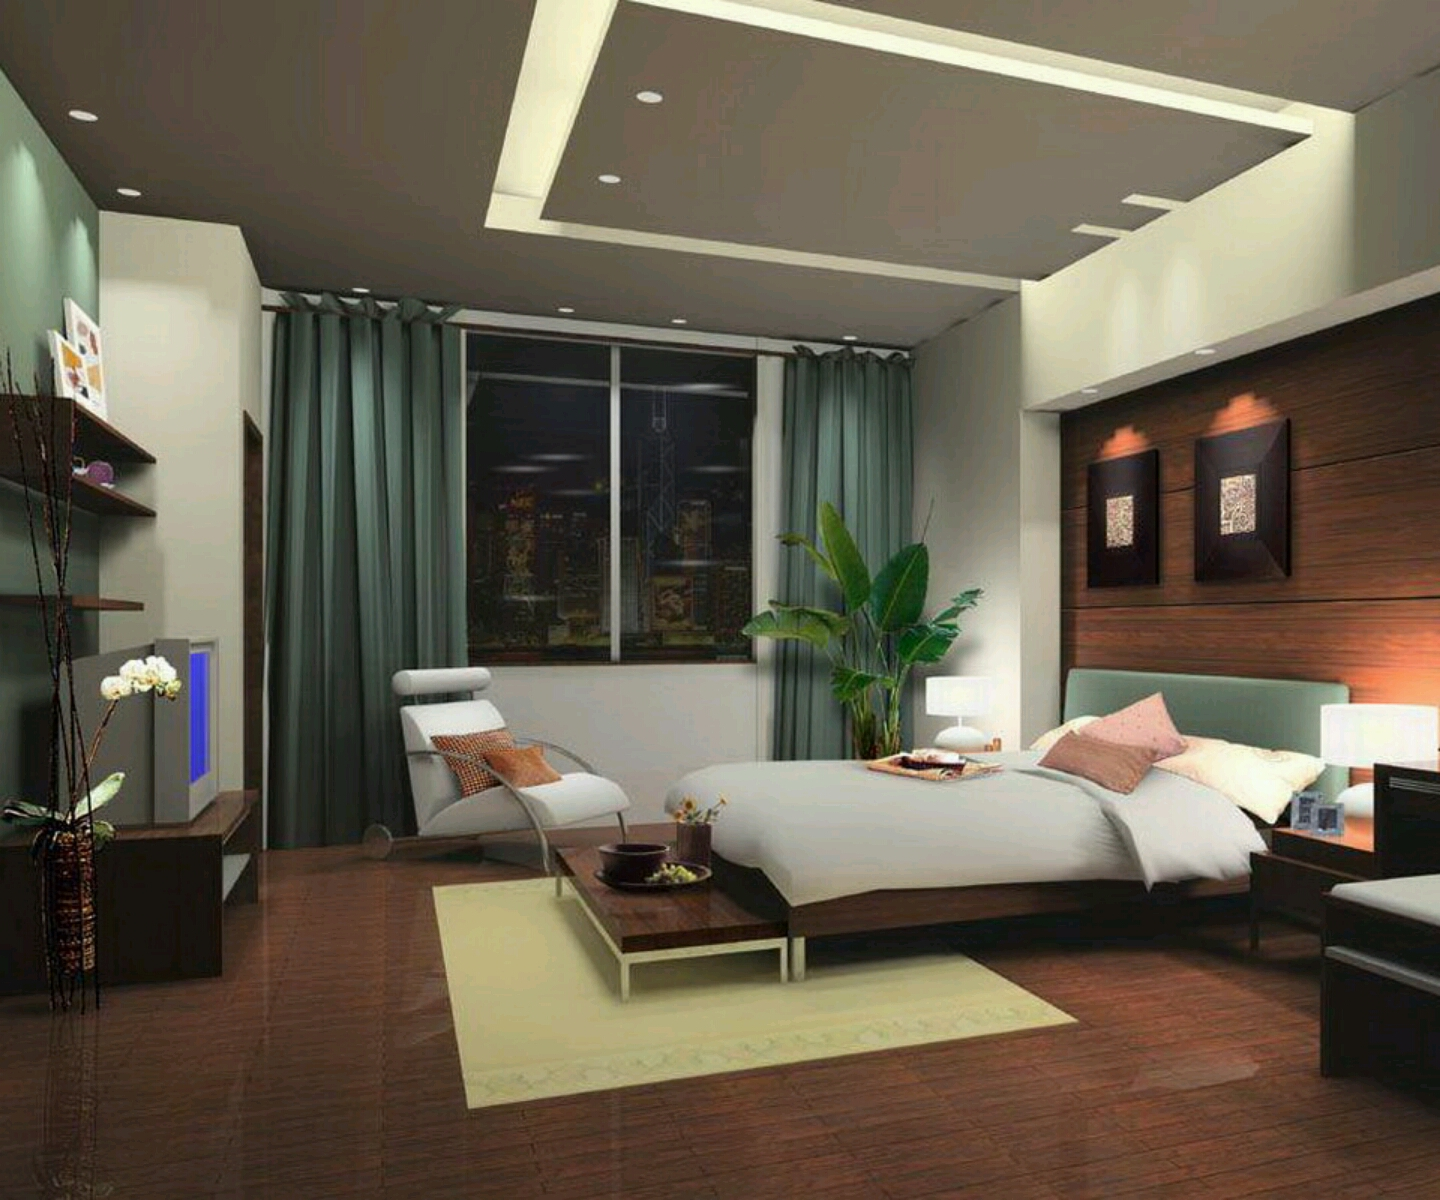 New home designs latest modern bedrooms designs best ideas for House decorating ideas